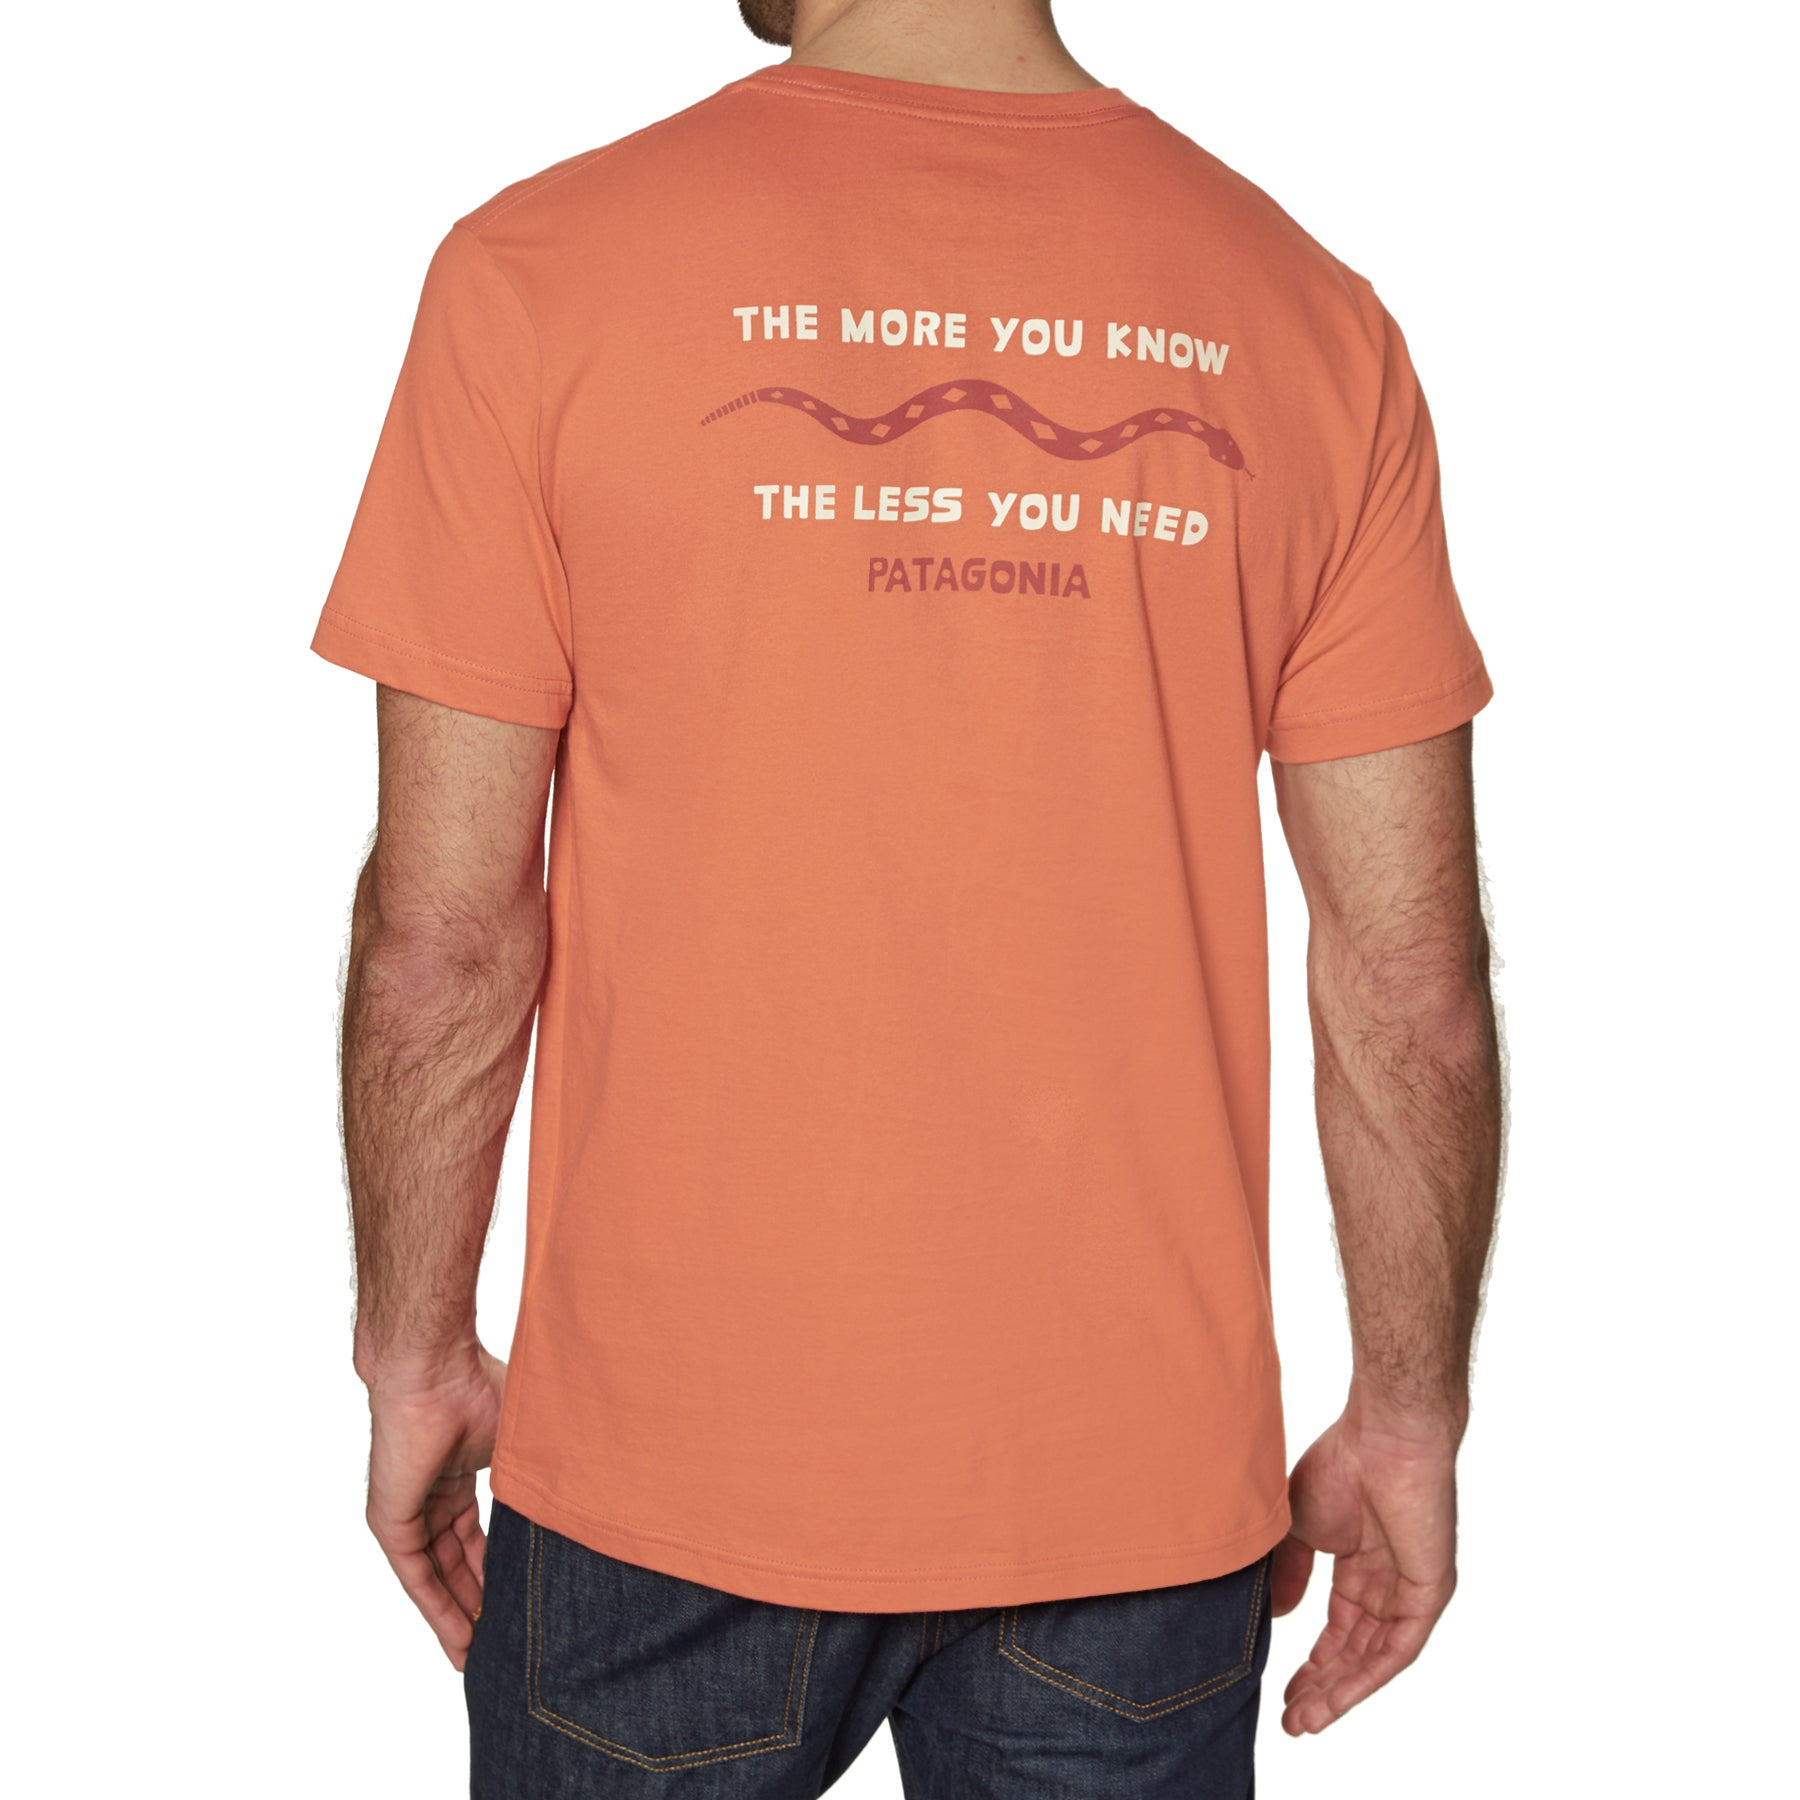 Patagonia The Less You Need Organic Short Sleeve T-Shirt - Sunset Orange